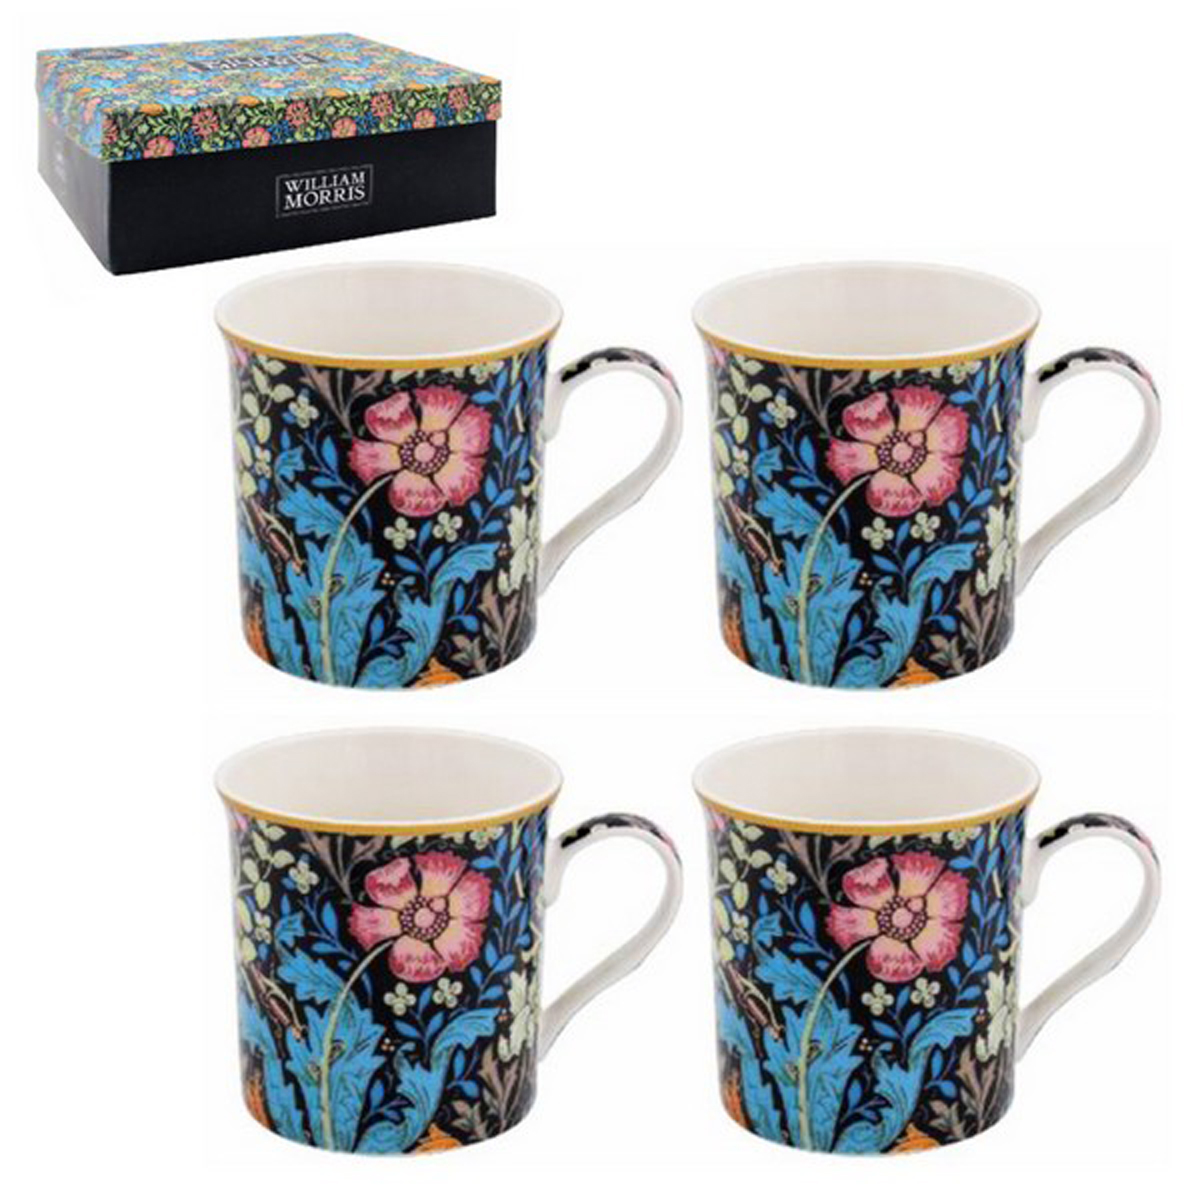 Coffret cadeau \'William Morris Collection\' bleu rose - Compton (4 mugs) - 85x85 mm - [A0734]